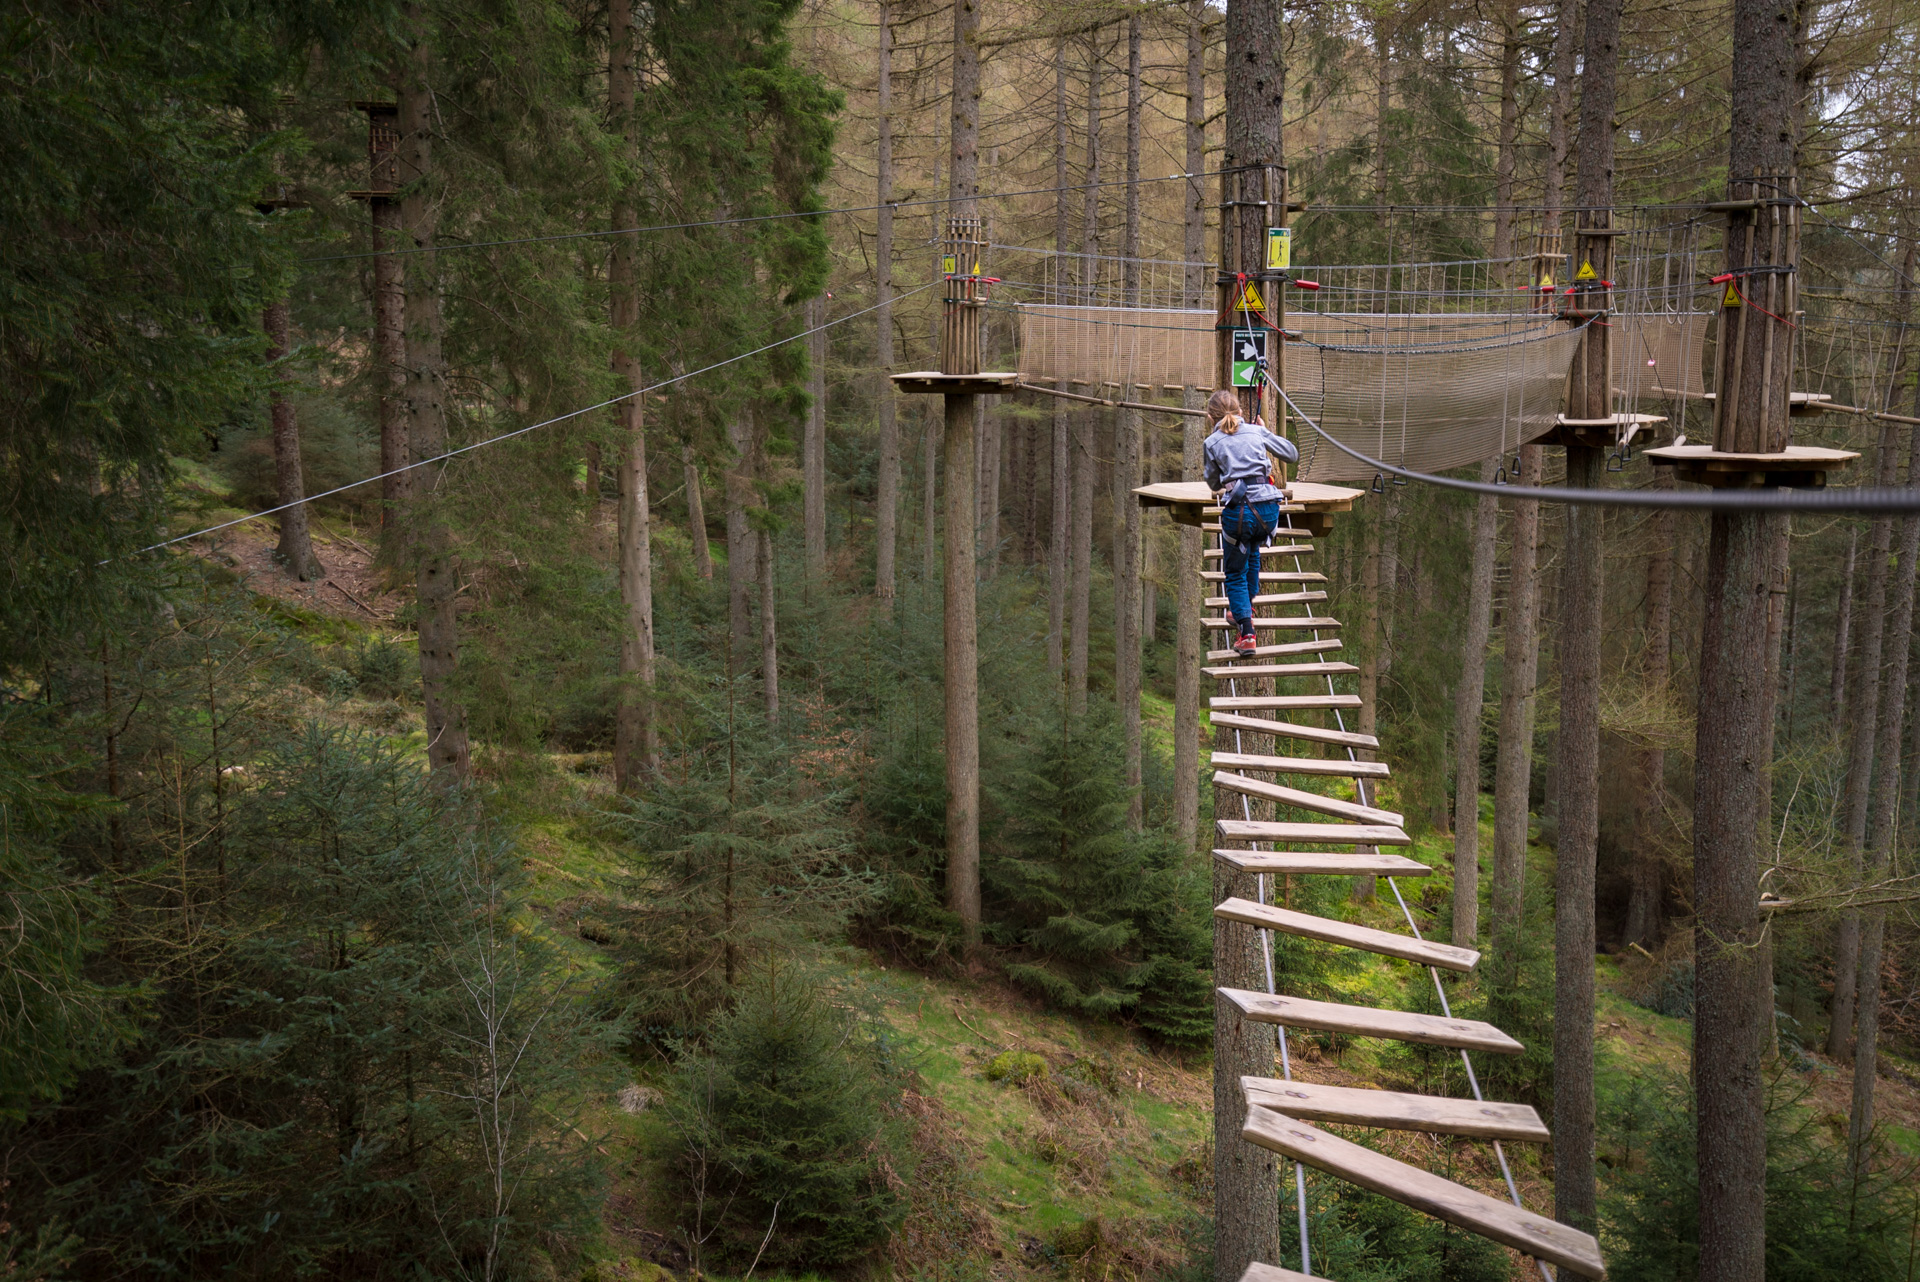 Go Ape in Aberfoyle, an adventure ropes course in Trossachs National Park